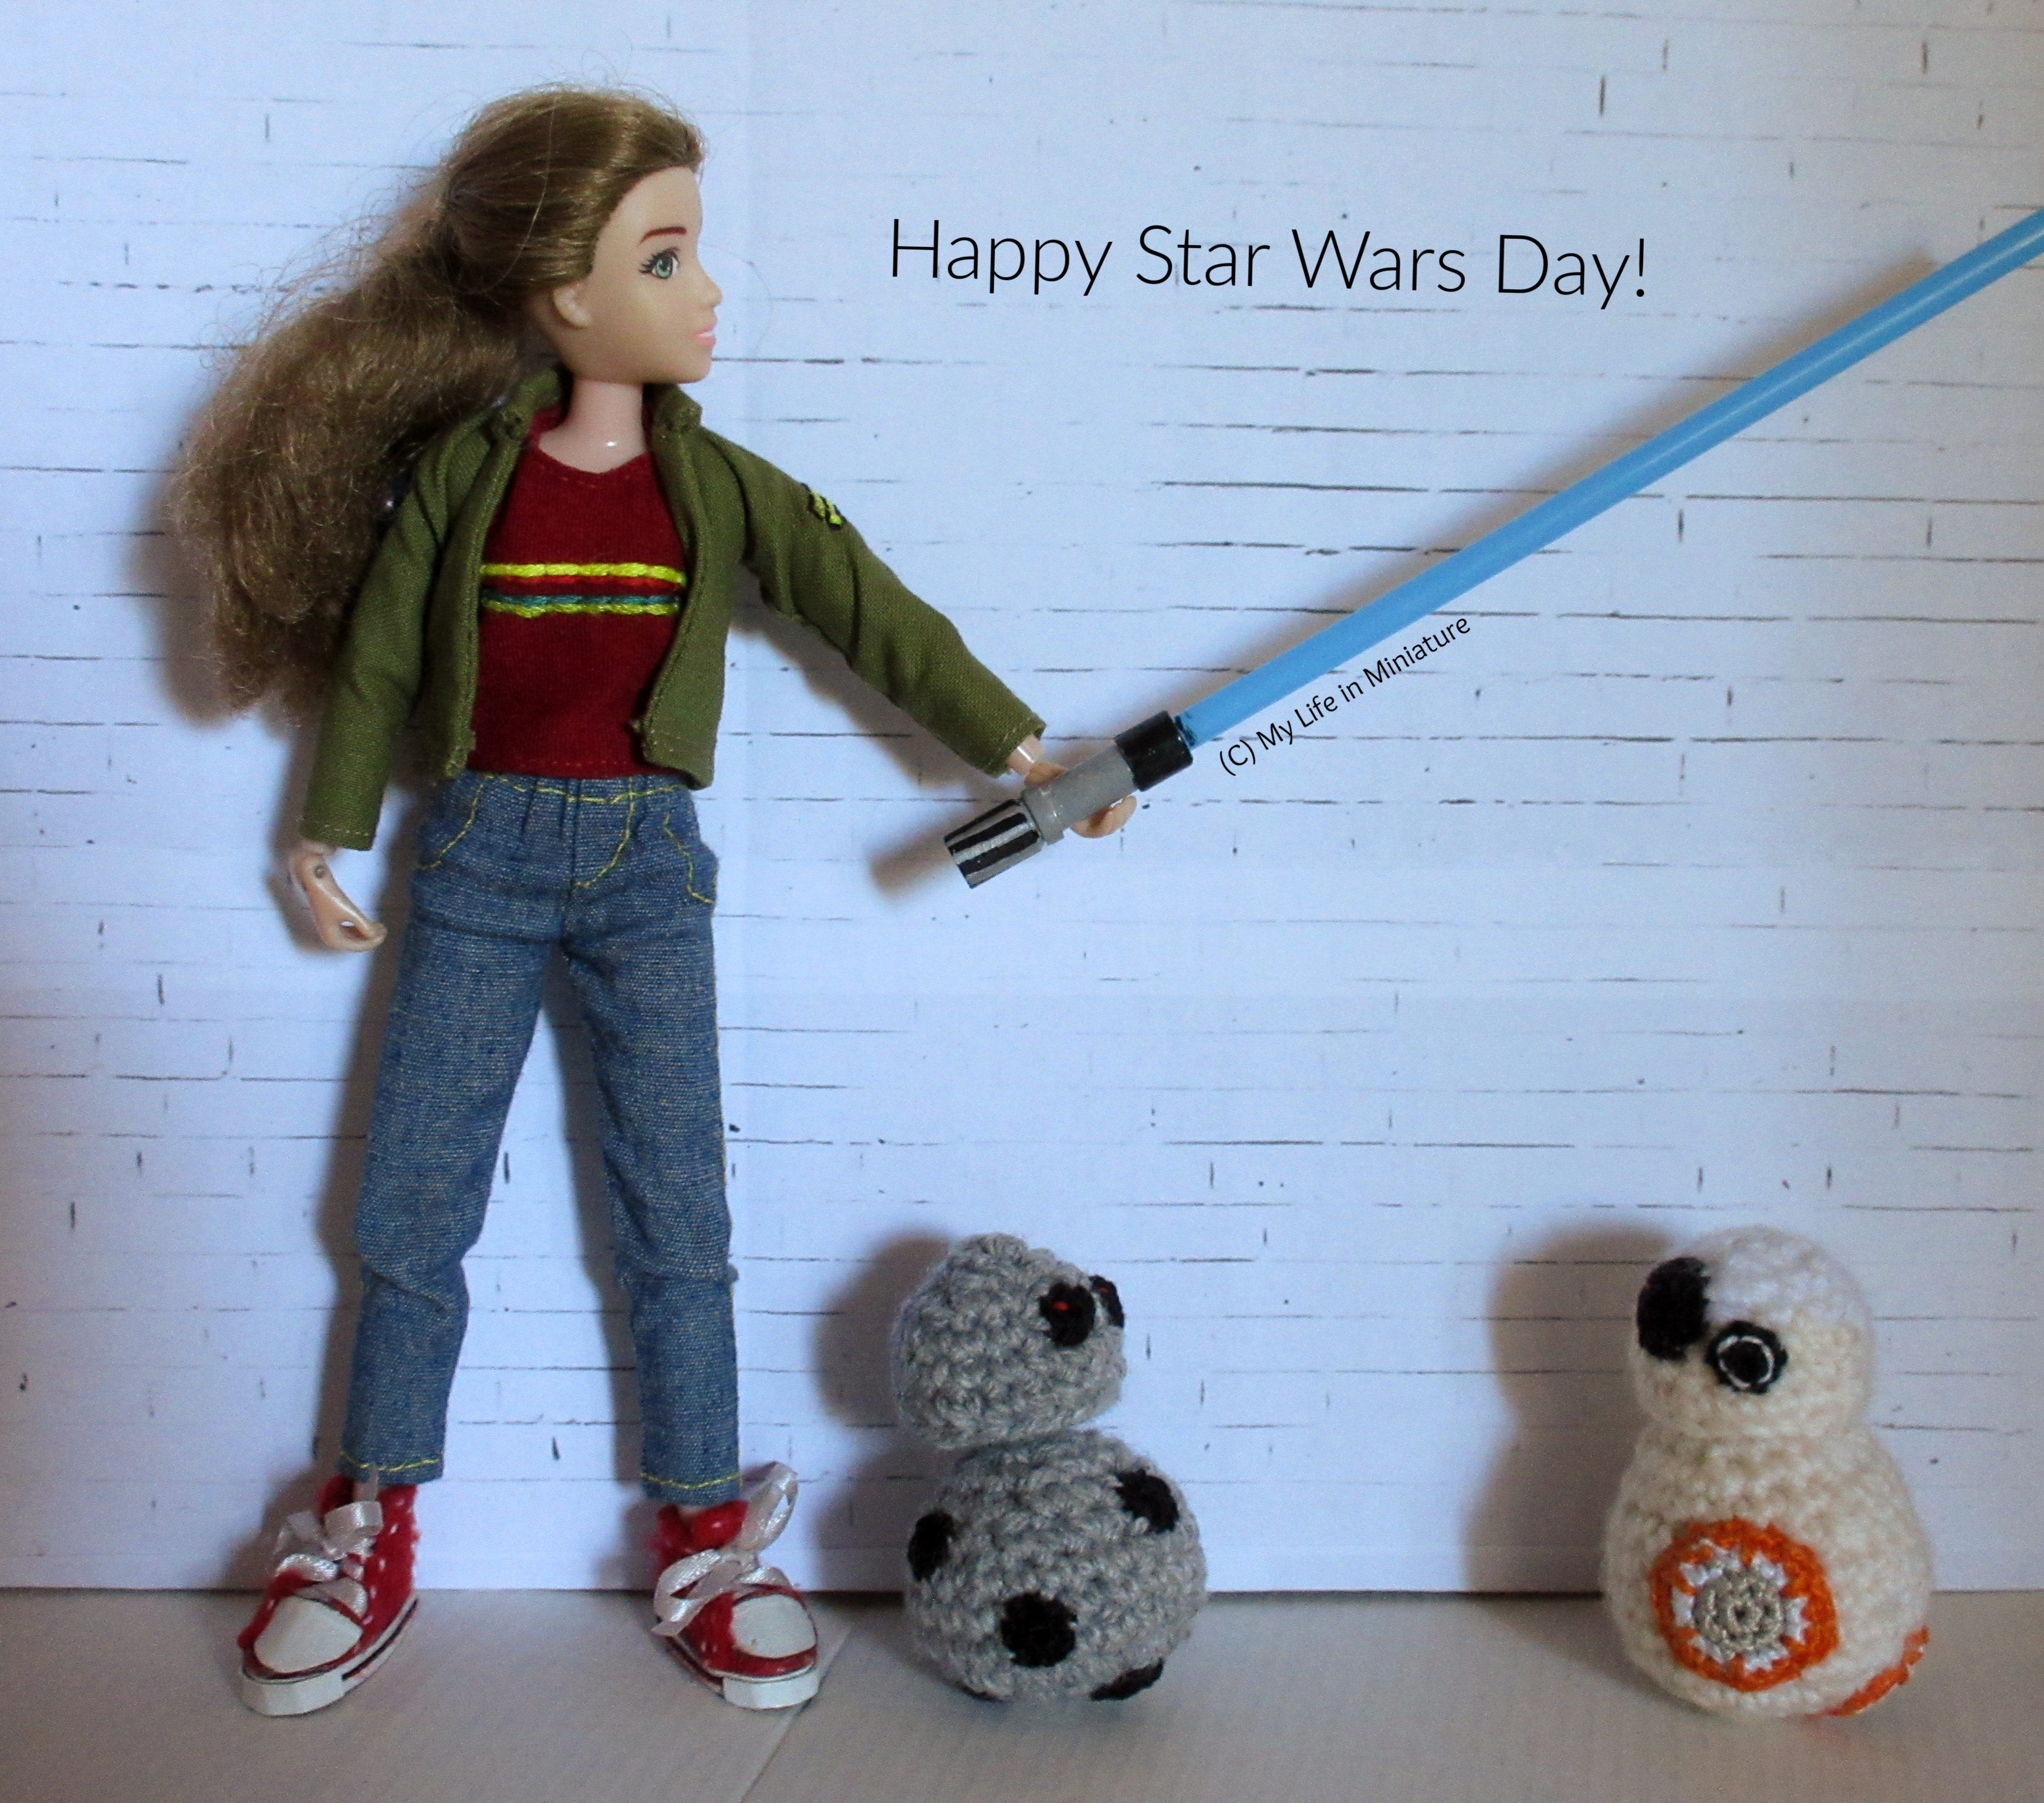 Sarah, BB-8, and Chip stand against a white brick background. Sarah is holding a blue lightsaber out to her side, looking at the laser. Chip and BB-8 are at Sarah's feet, looking at each other. Above the lightsaber are the words 'Happy Star Wars Day!'.